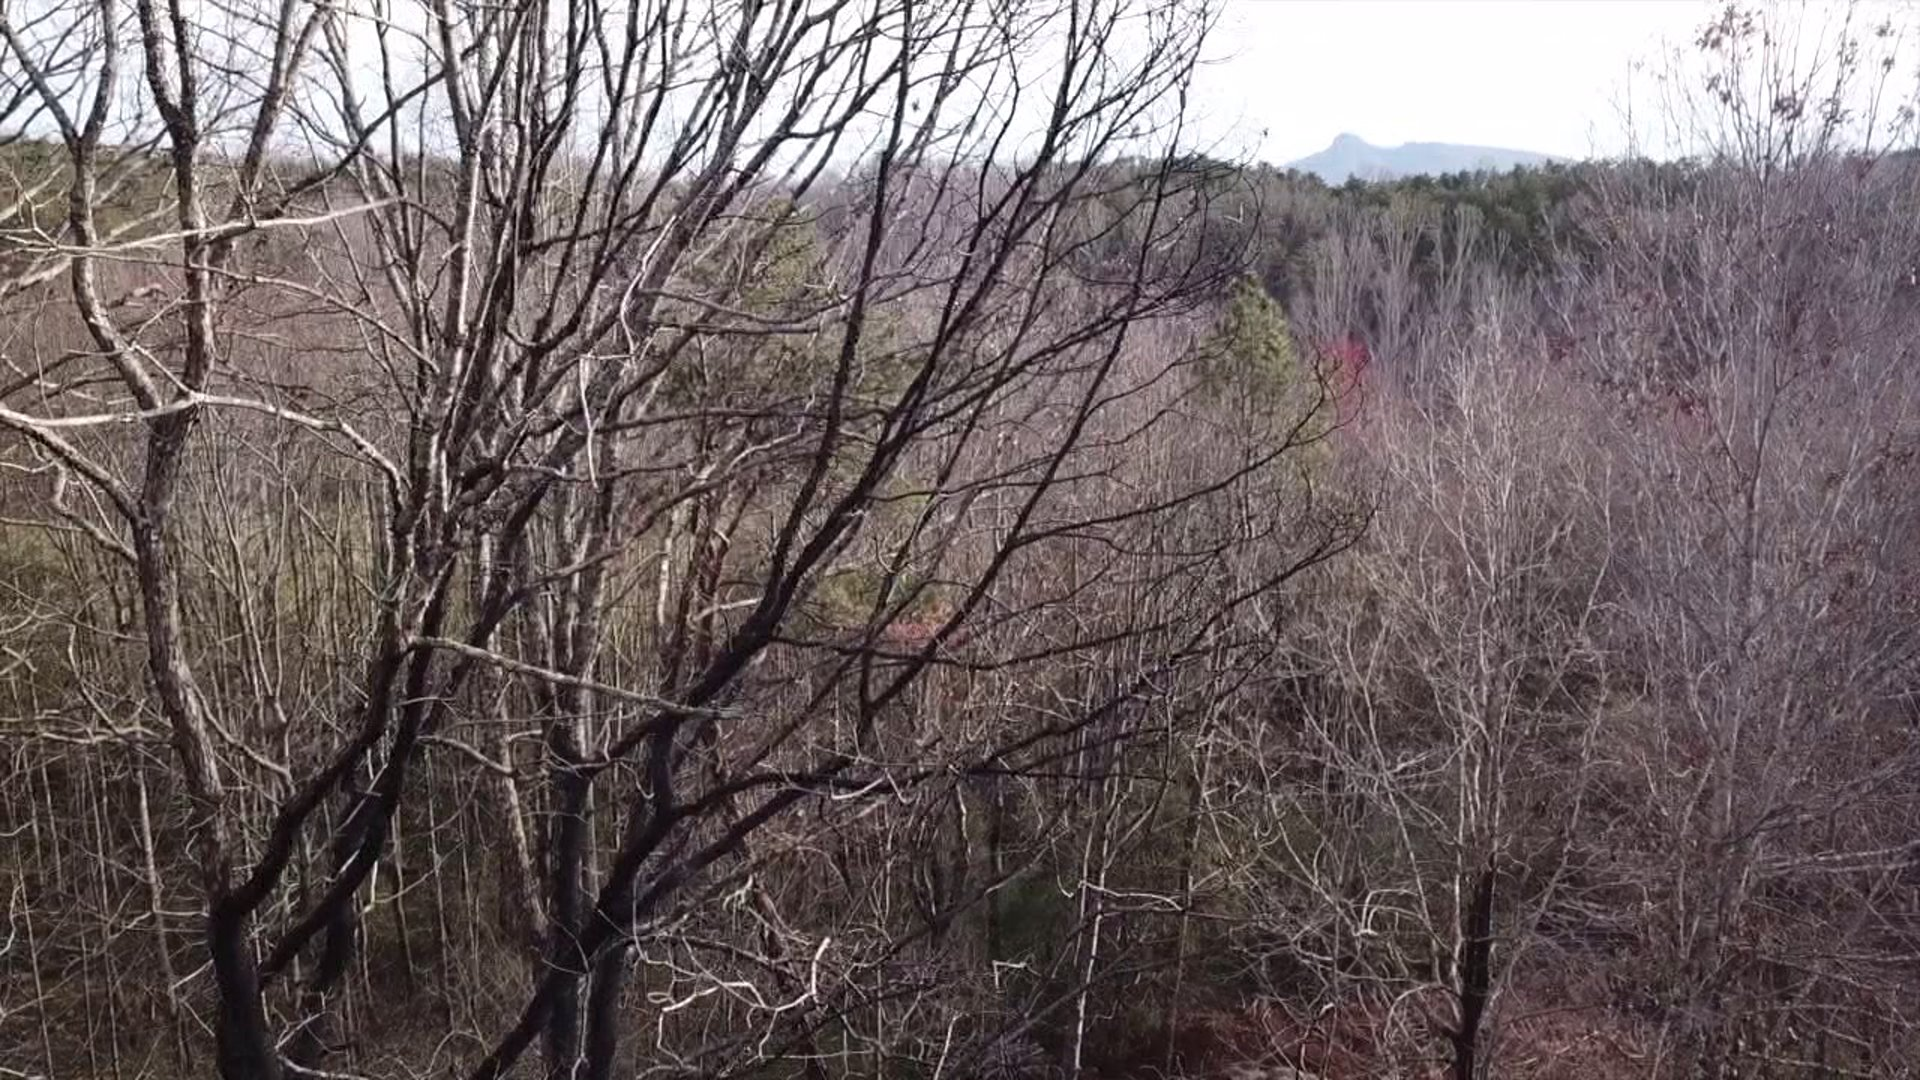 The secluded area where Ronda Blaylock's body was found